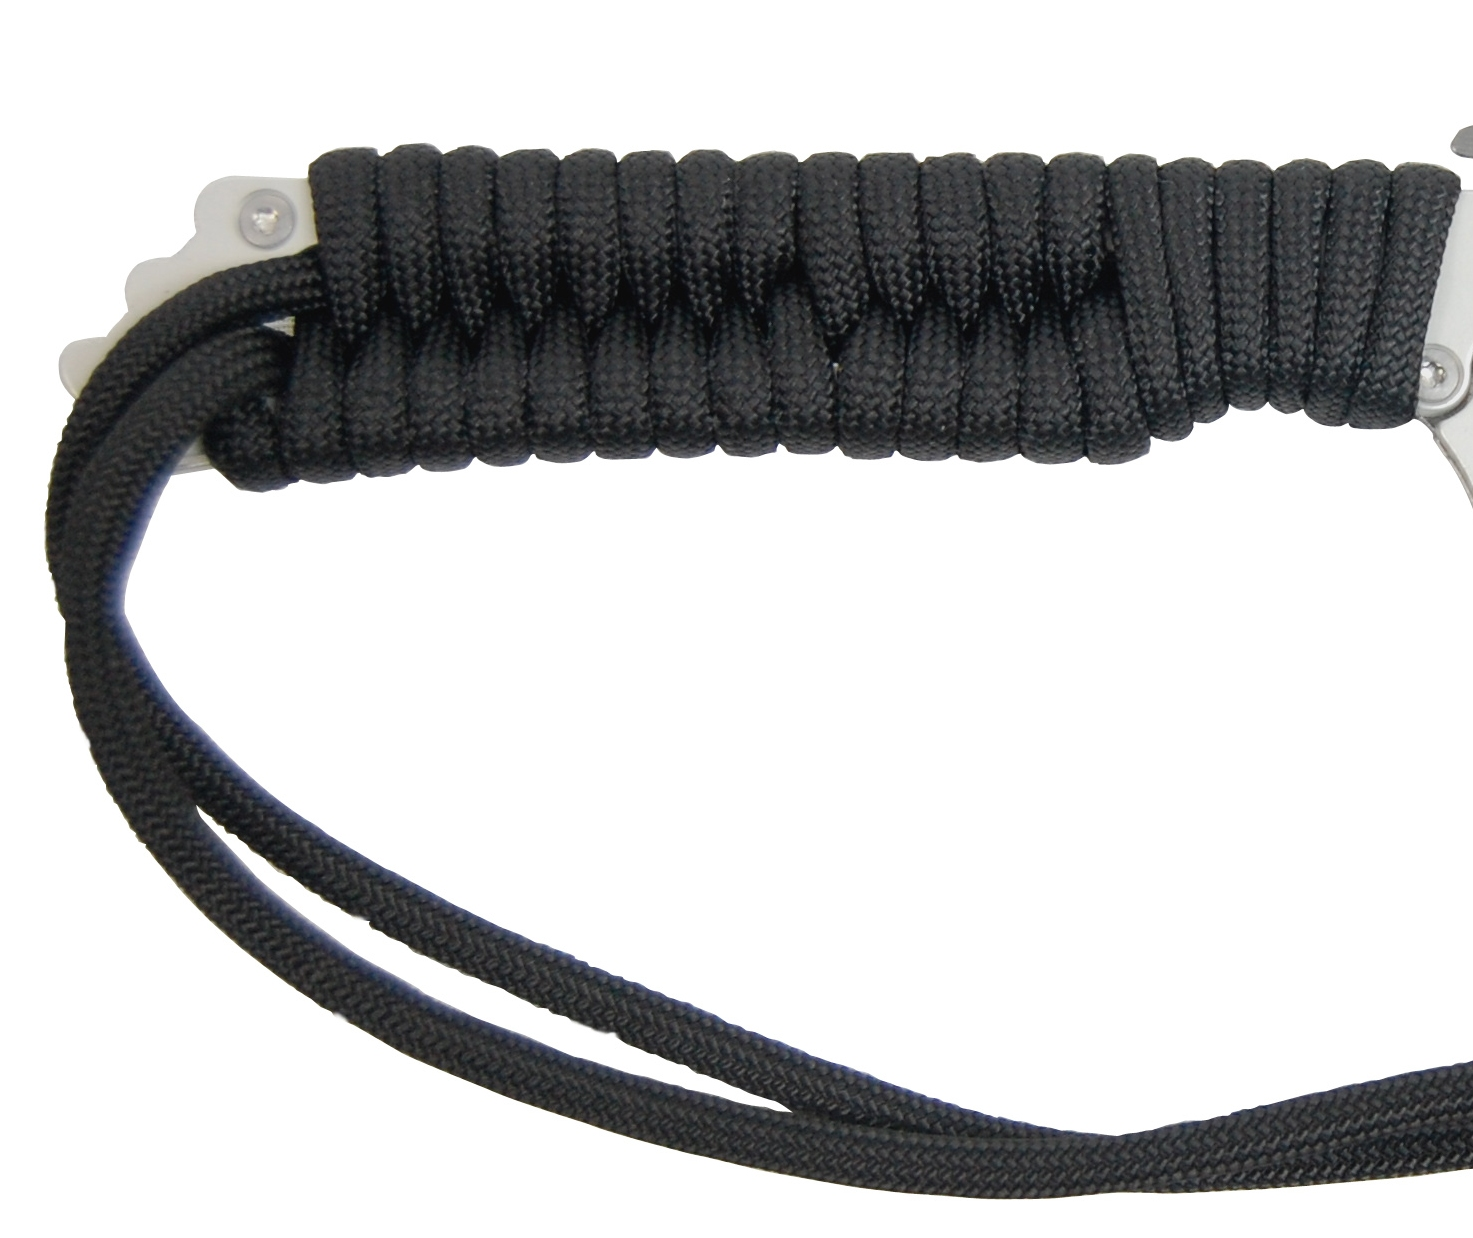 Handle Wrapped with Black Paracord